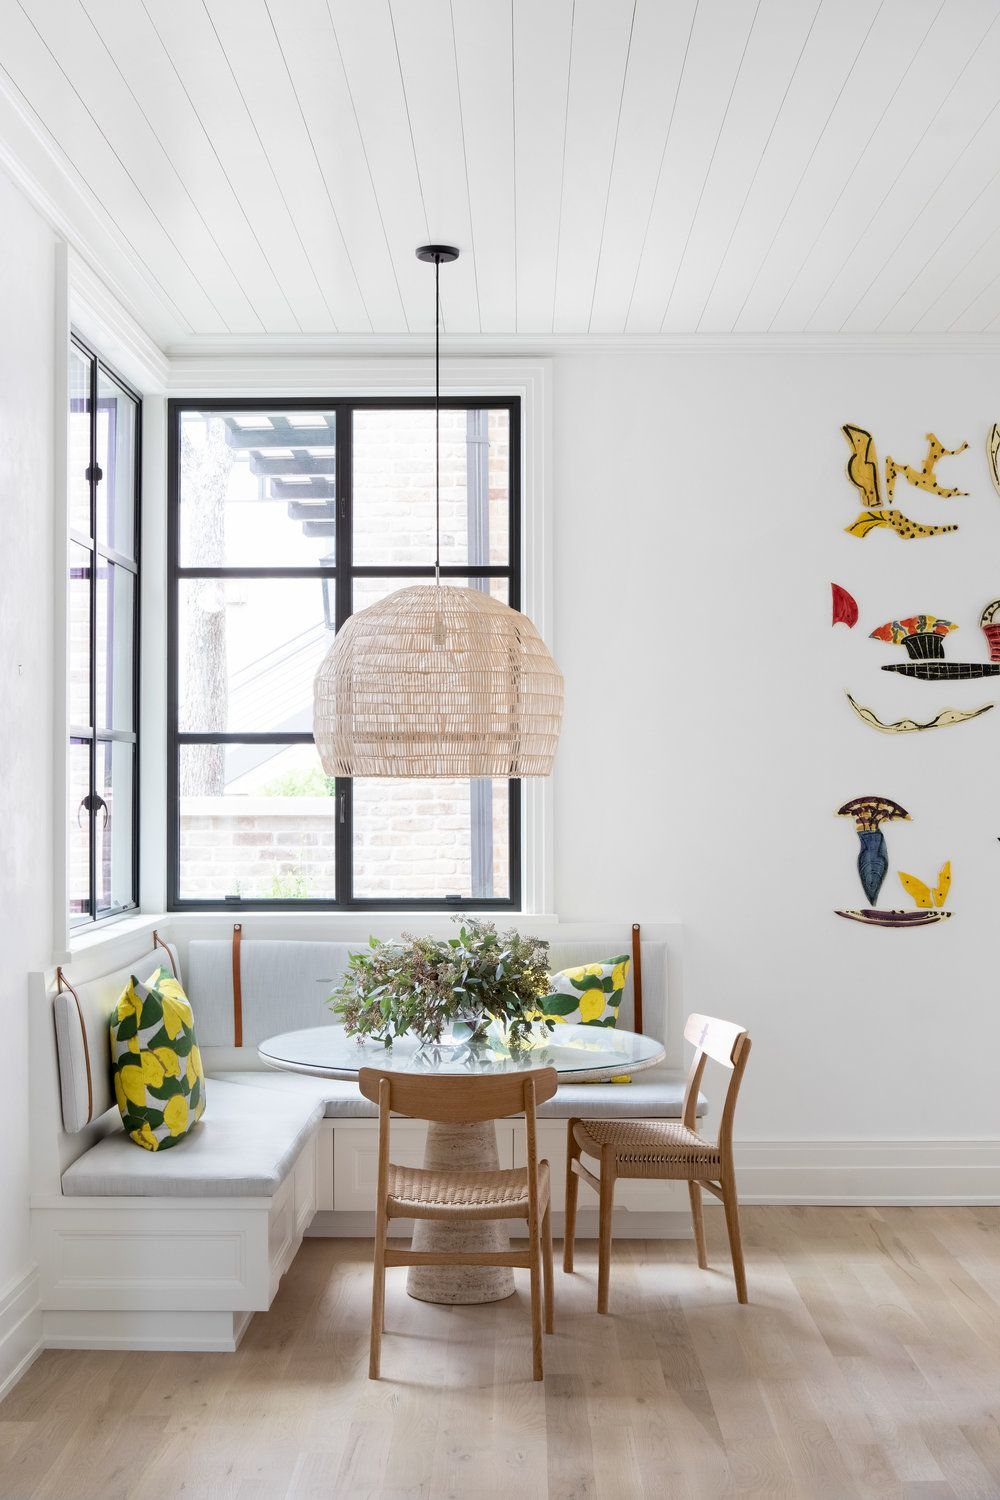 7 Breakfast Nook Ideas - Kitchen Nook Furniture